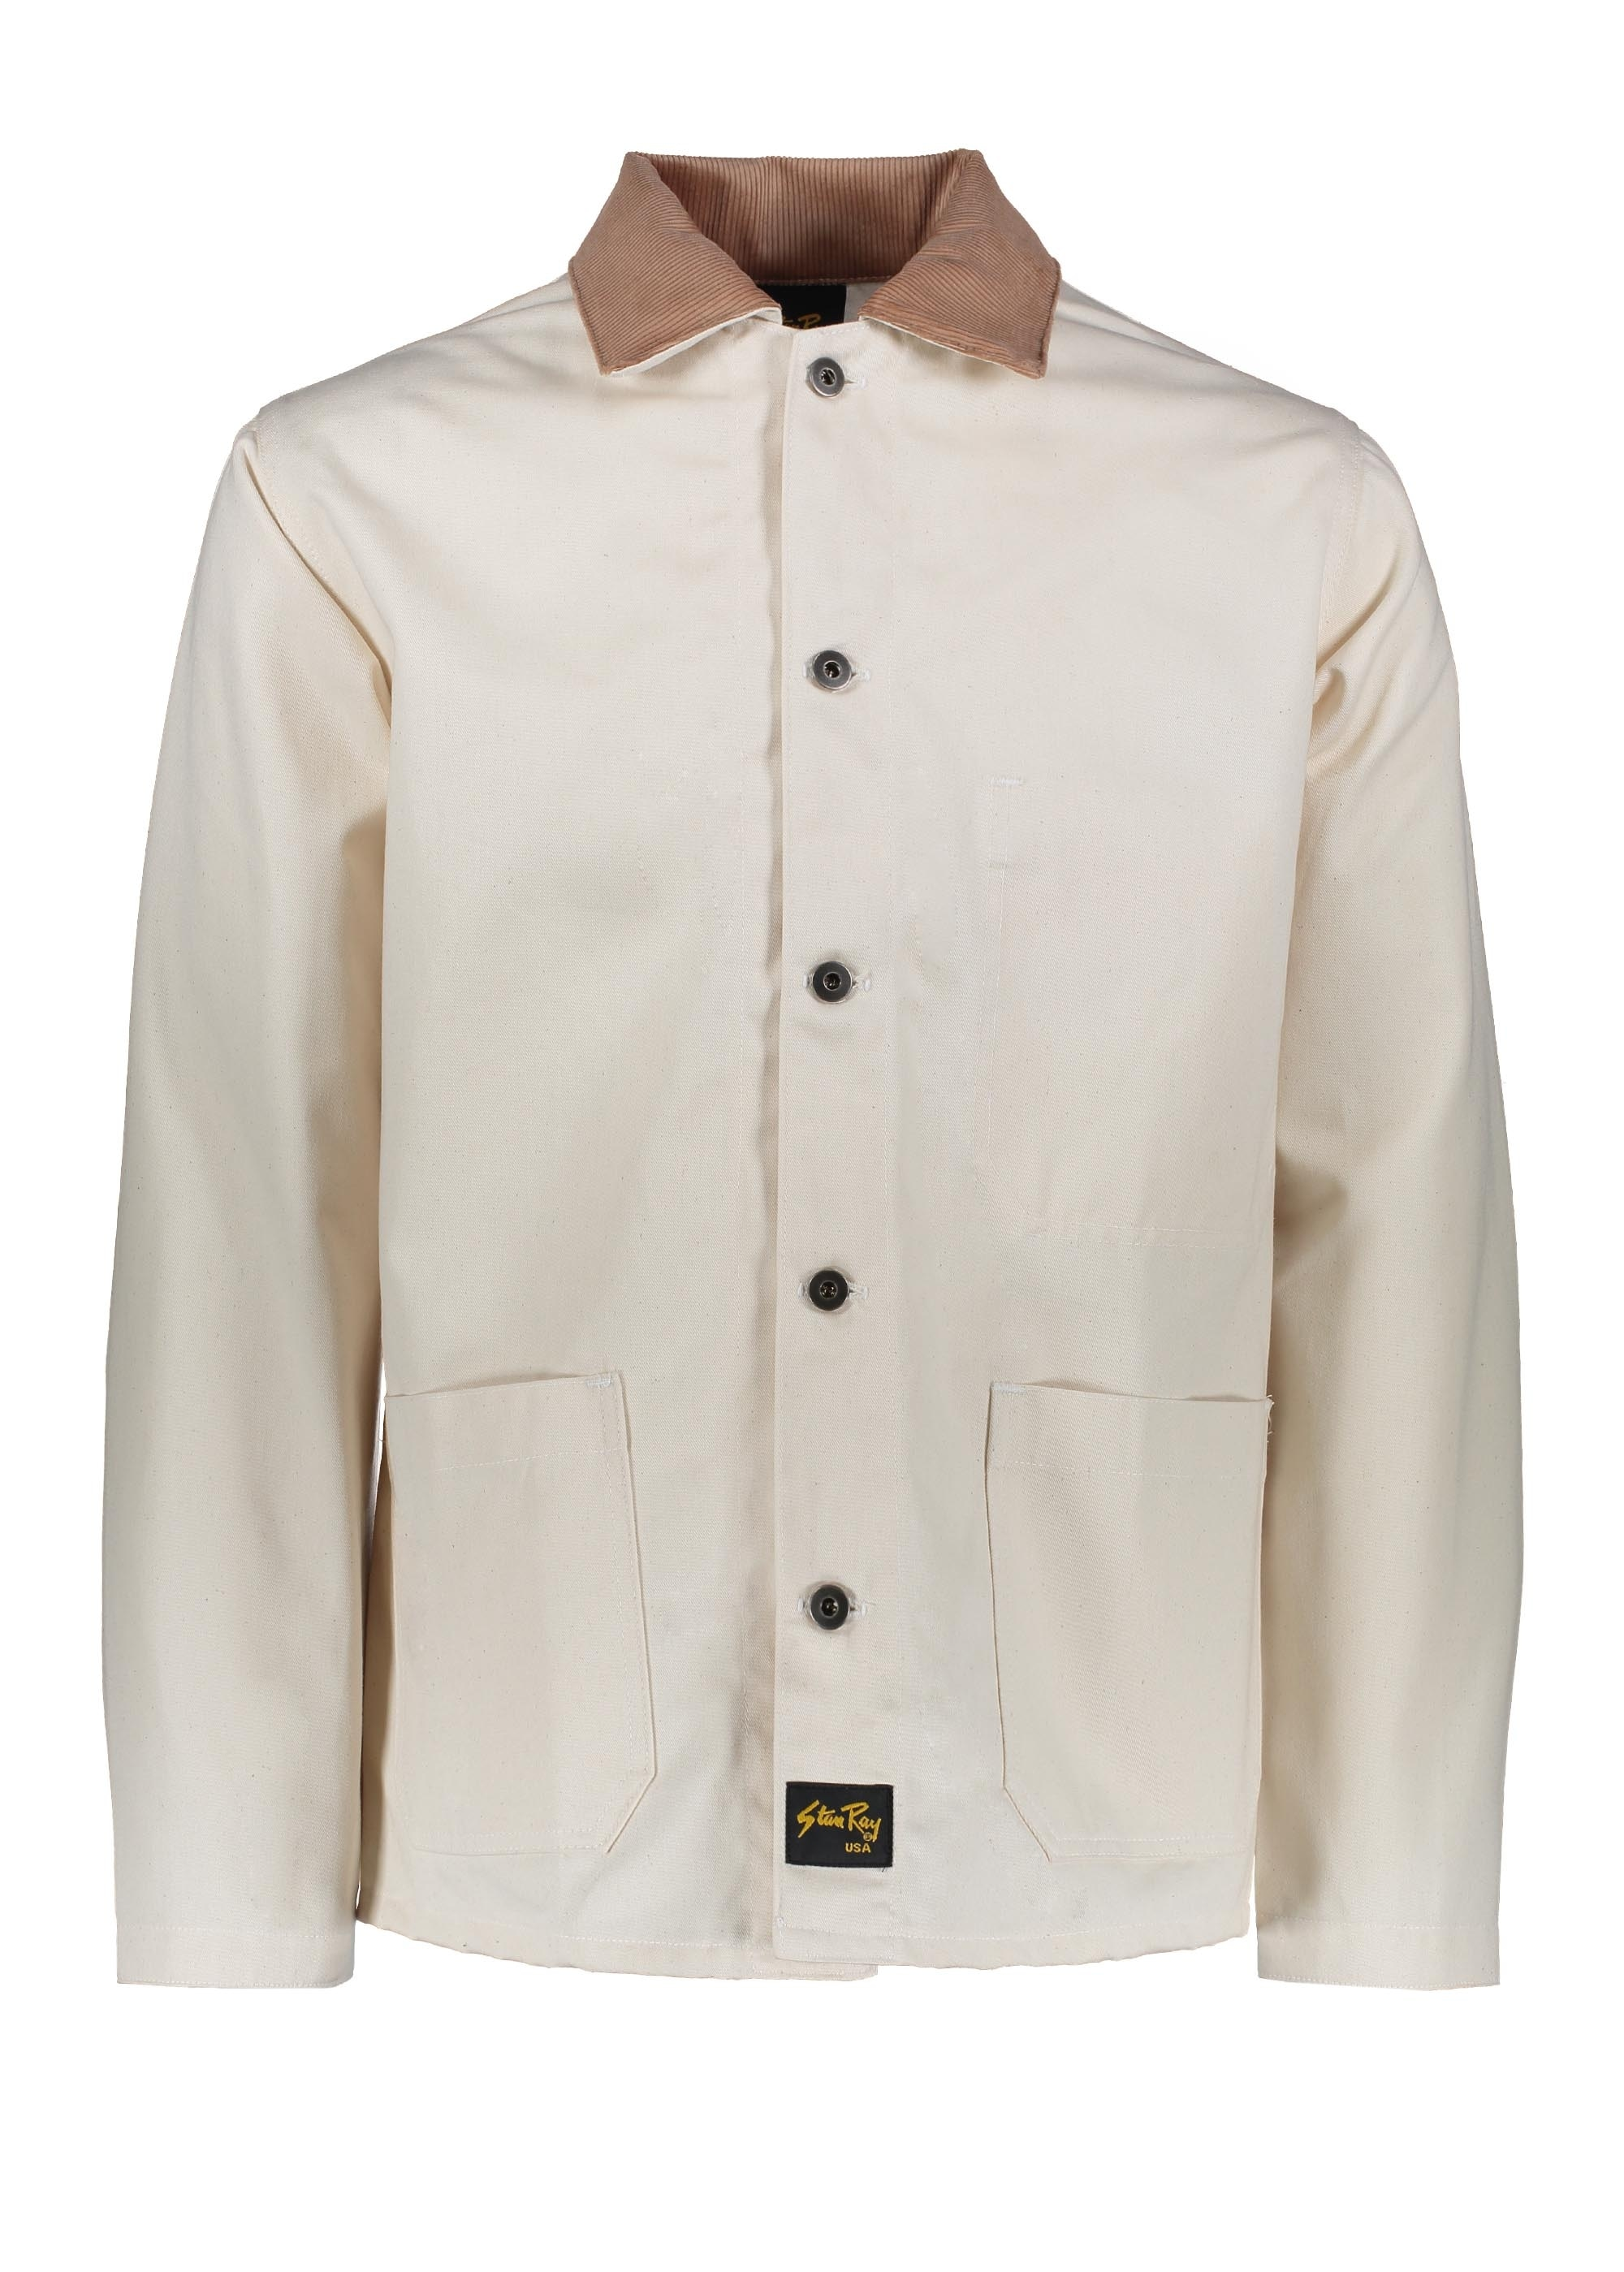 8fdc2152449d Stan Ray Archive Jacket - Natural - Jackets from Triads UK